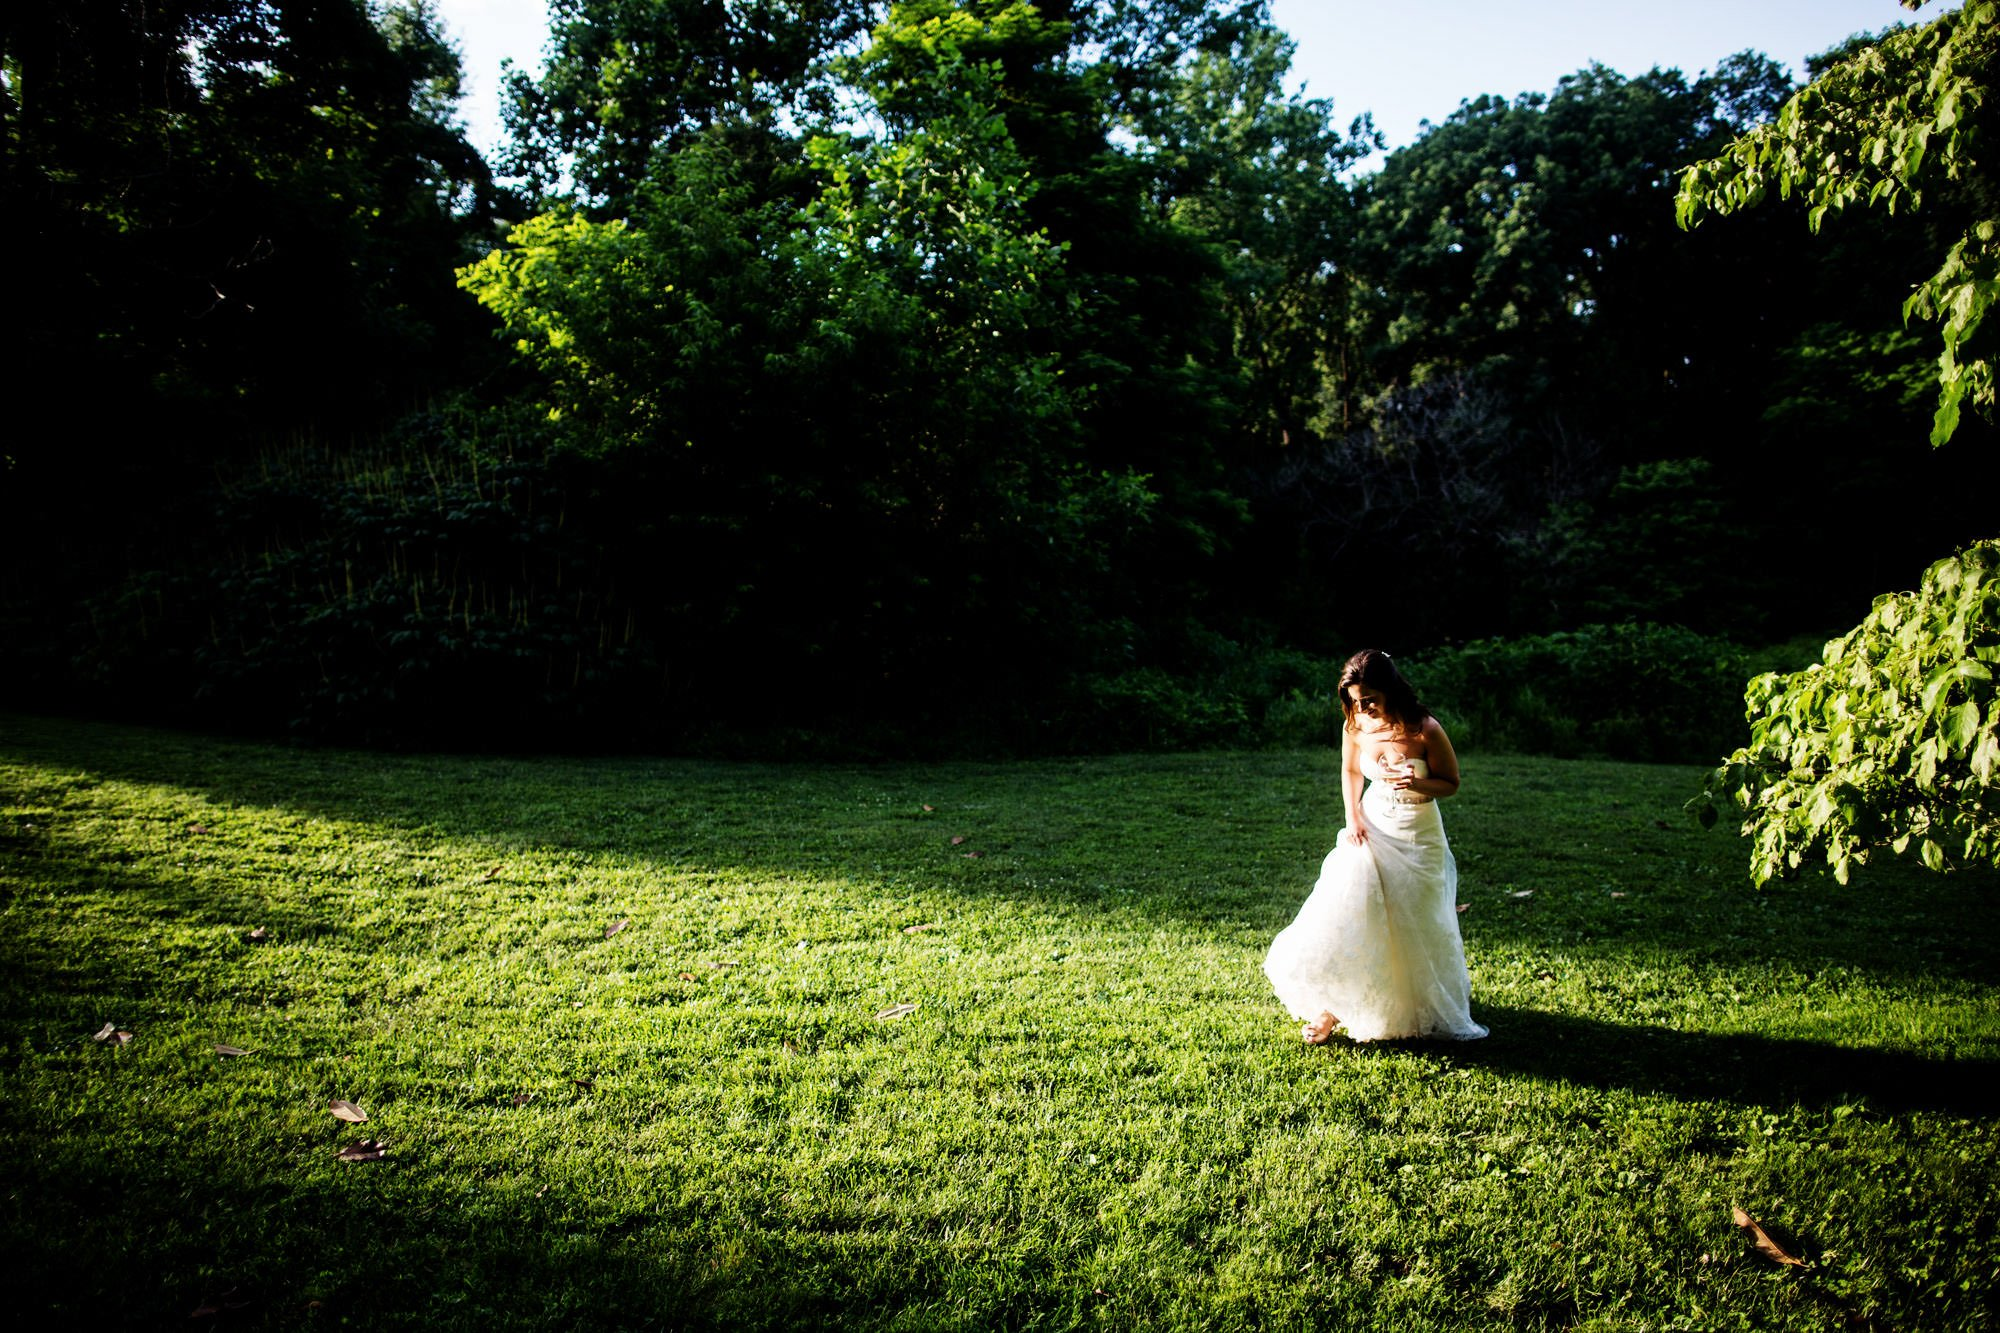 The bride stands in a field of grass following the ceremony.